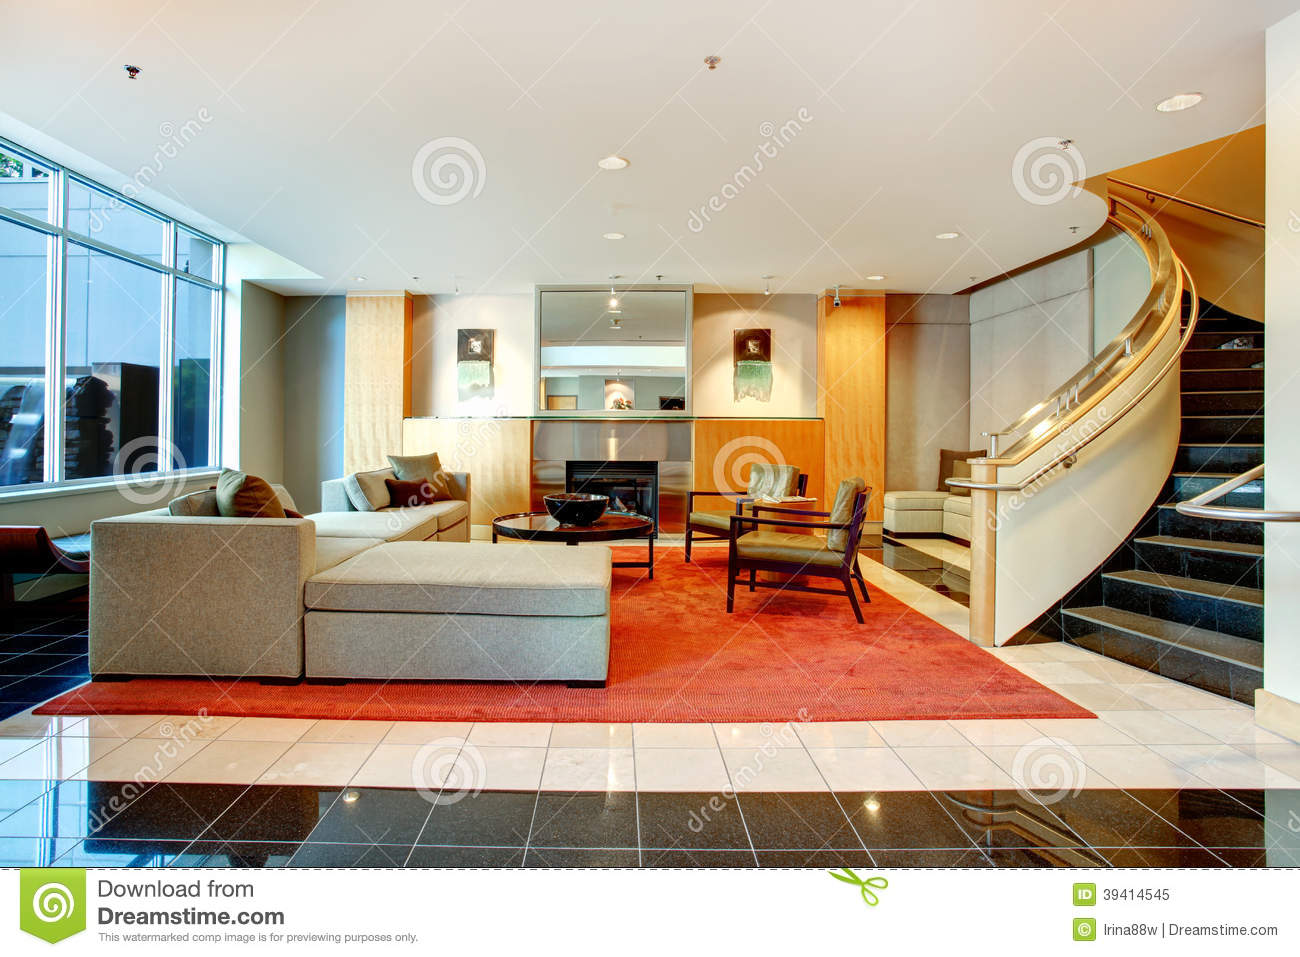 Download Apartment Building Main Lobby Area. Stock Image   Image Of Building,  Bright: